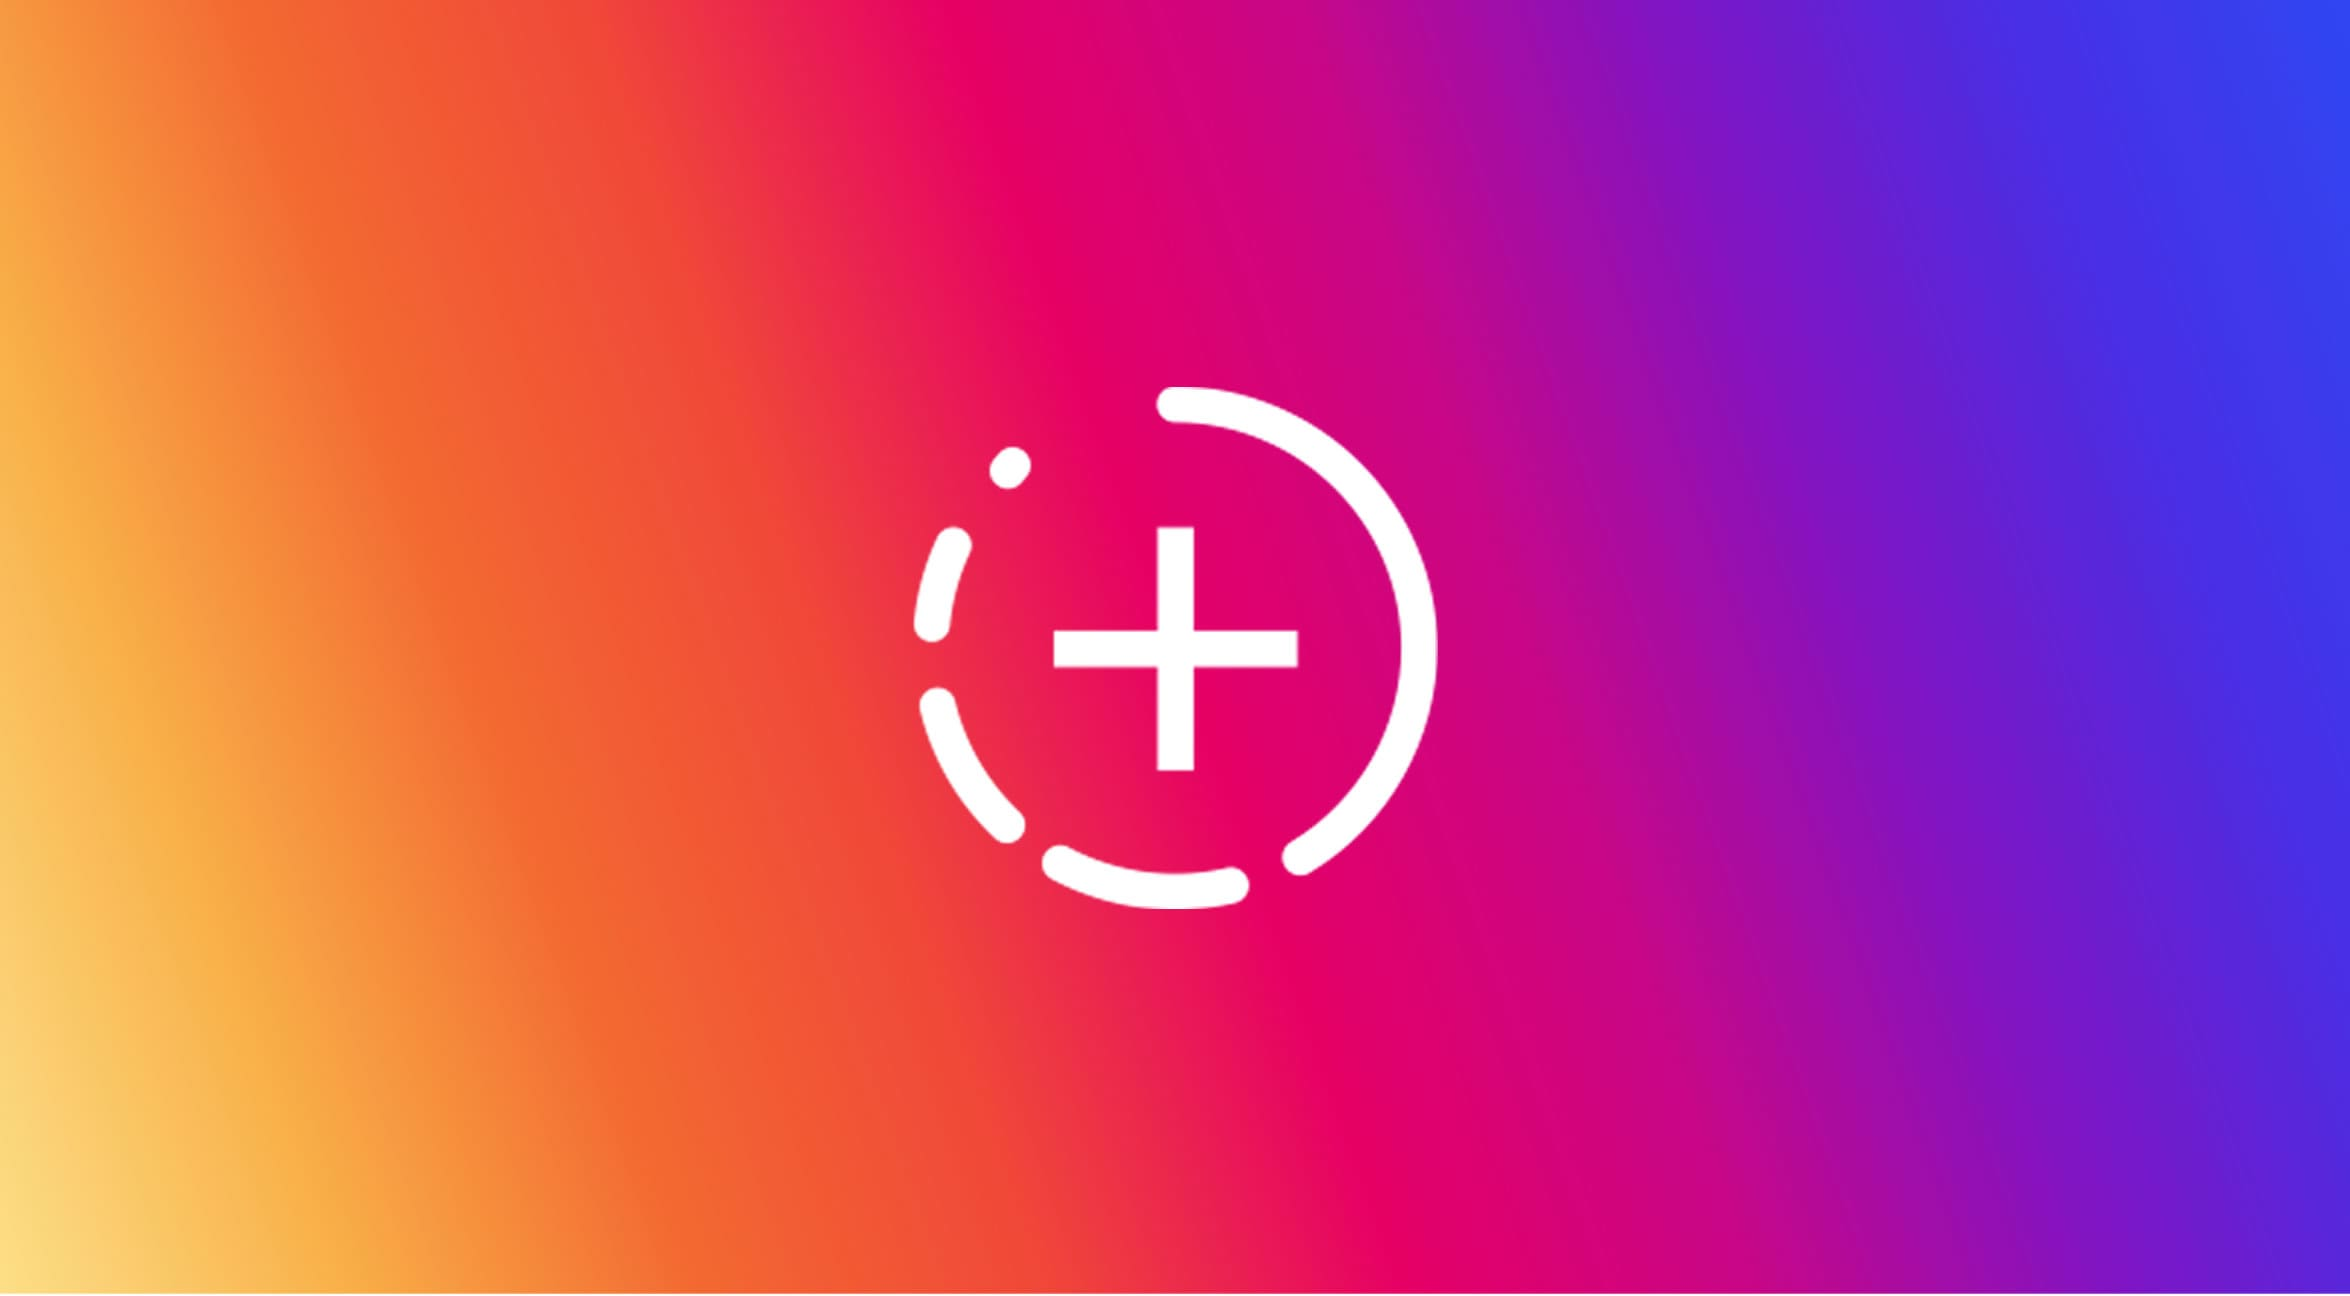 Tips to Use Instagram as a Graphic Designer - Instagram Stories